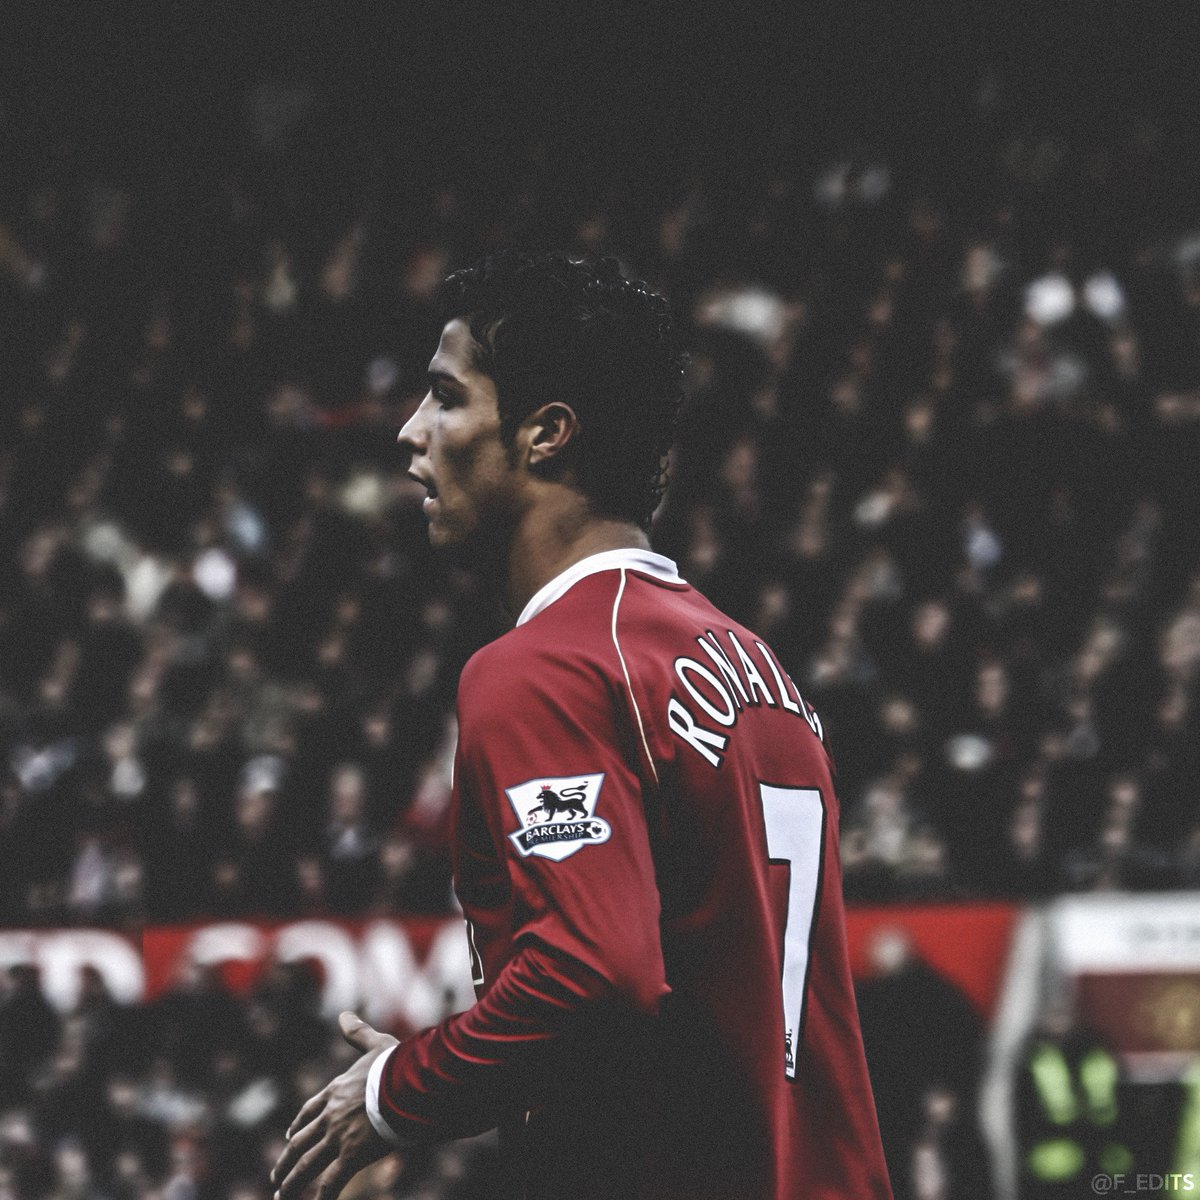 Fredrik On Twitter A Young Cristiano Ronaldo Mufc Iphone Wallpaper And Icon Https T Co F0bauurpgl